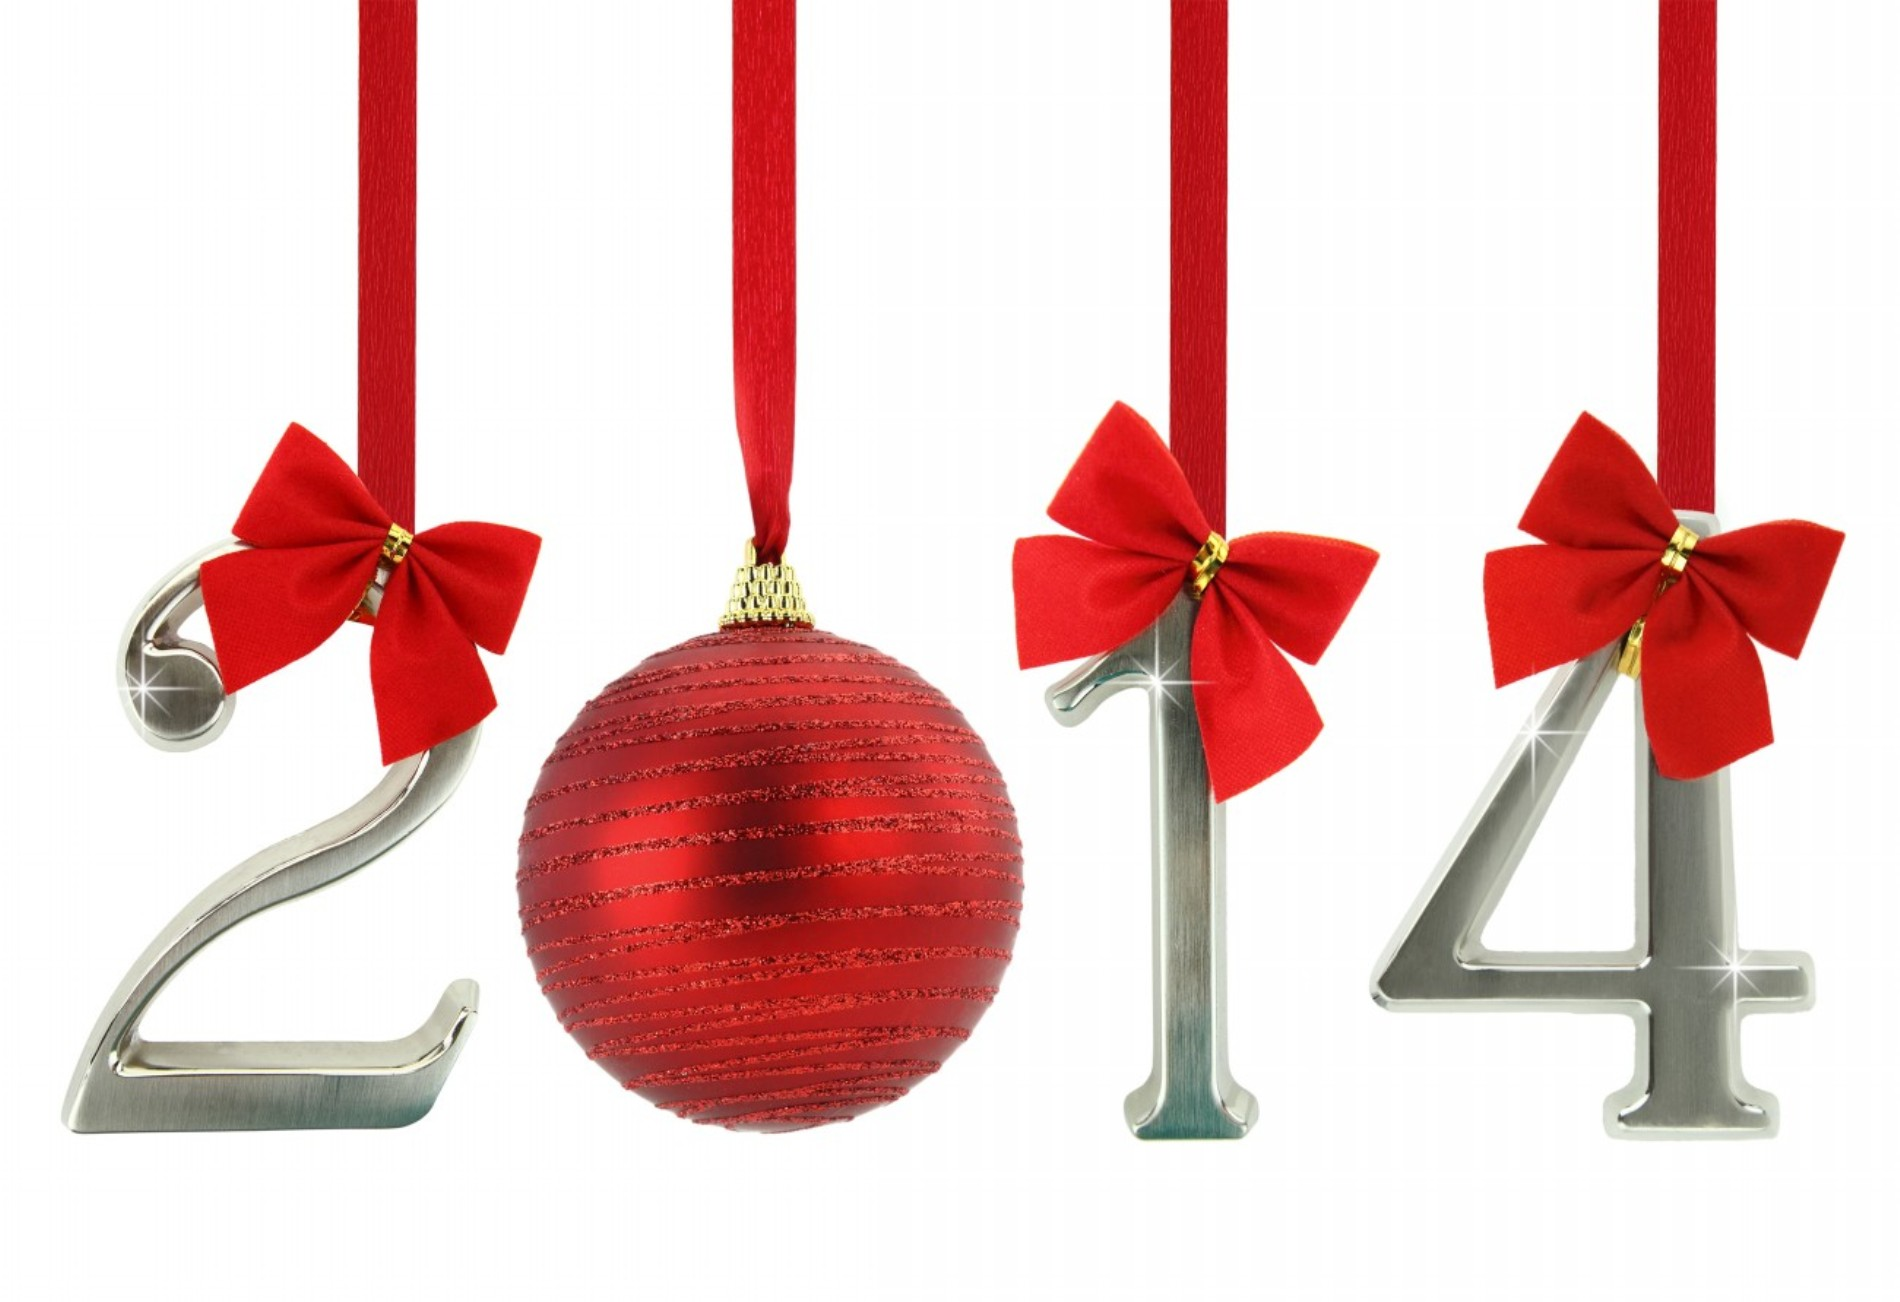 happy new year 2014 pgcps mess reform sasscer without delay